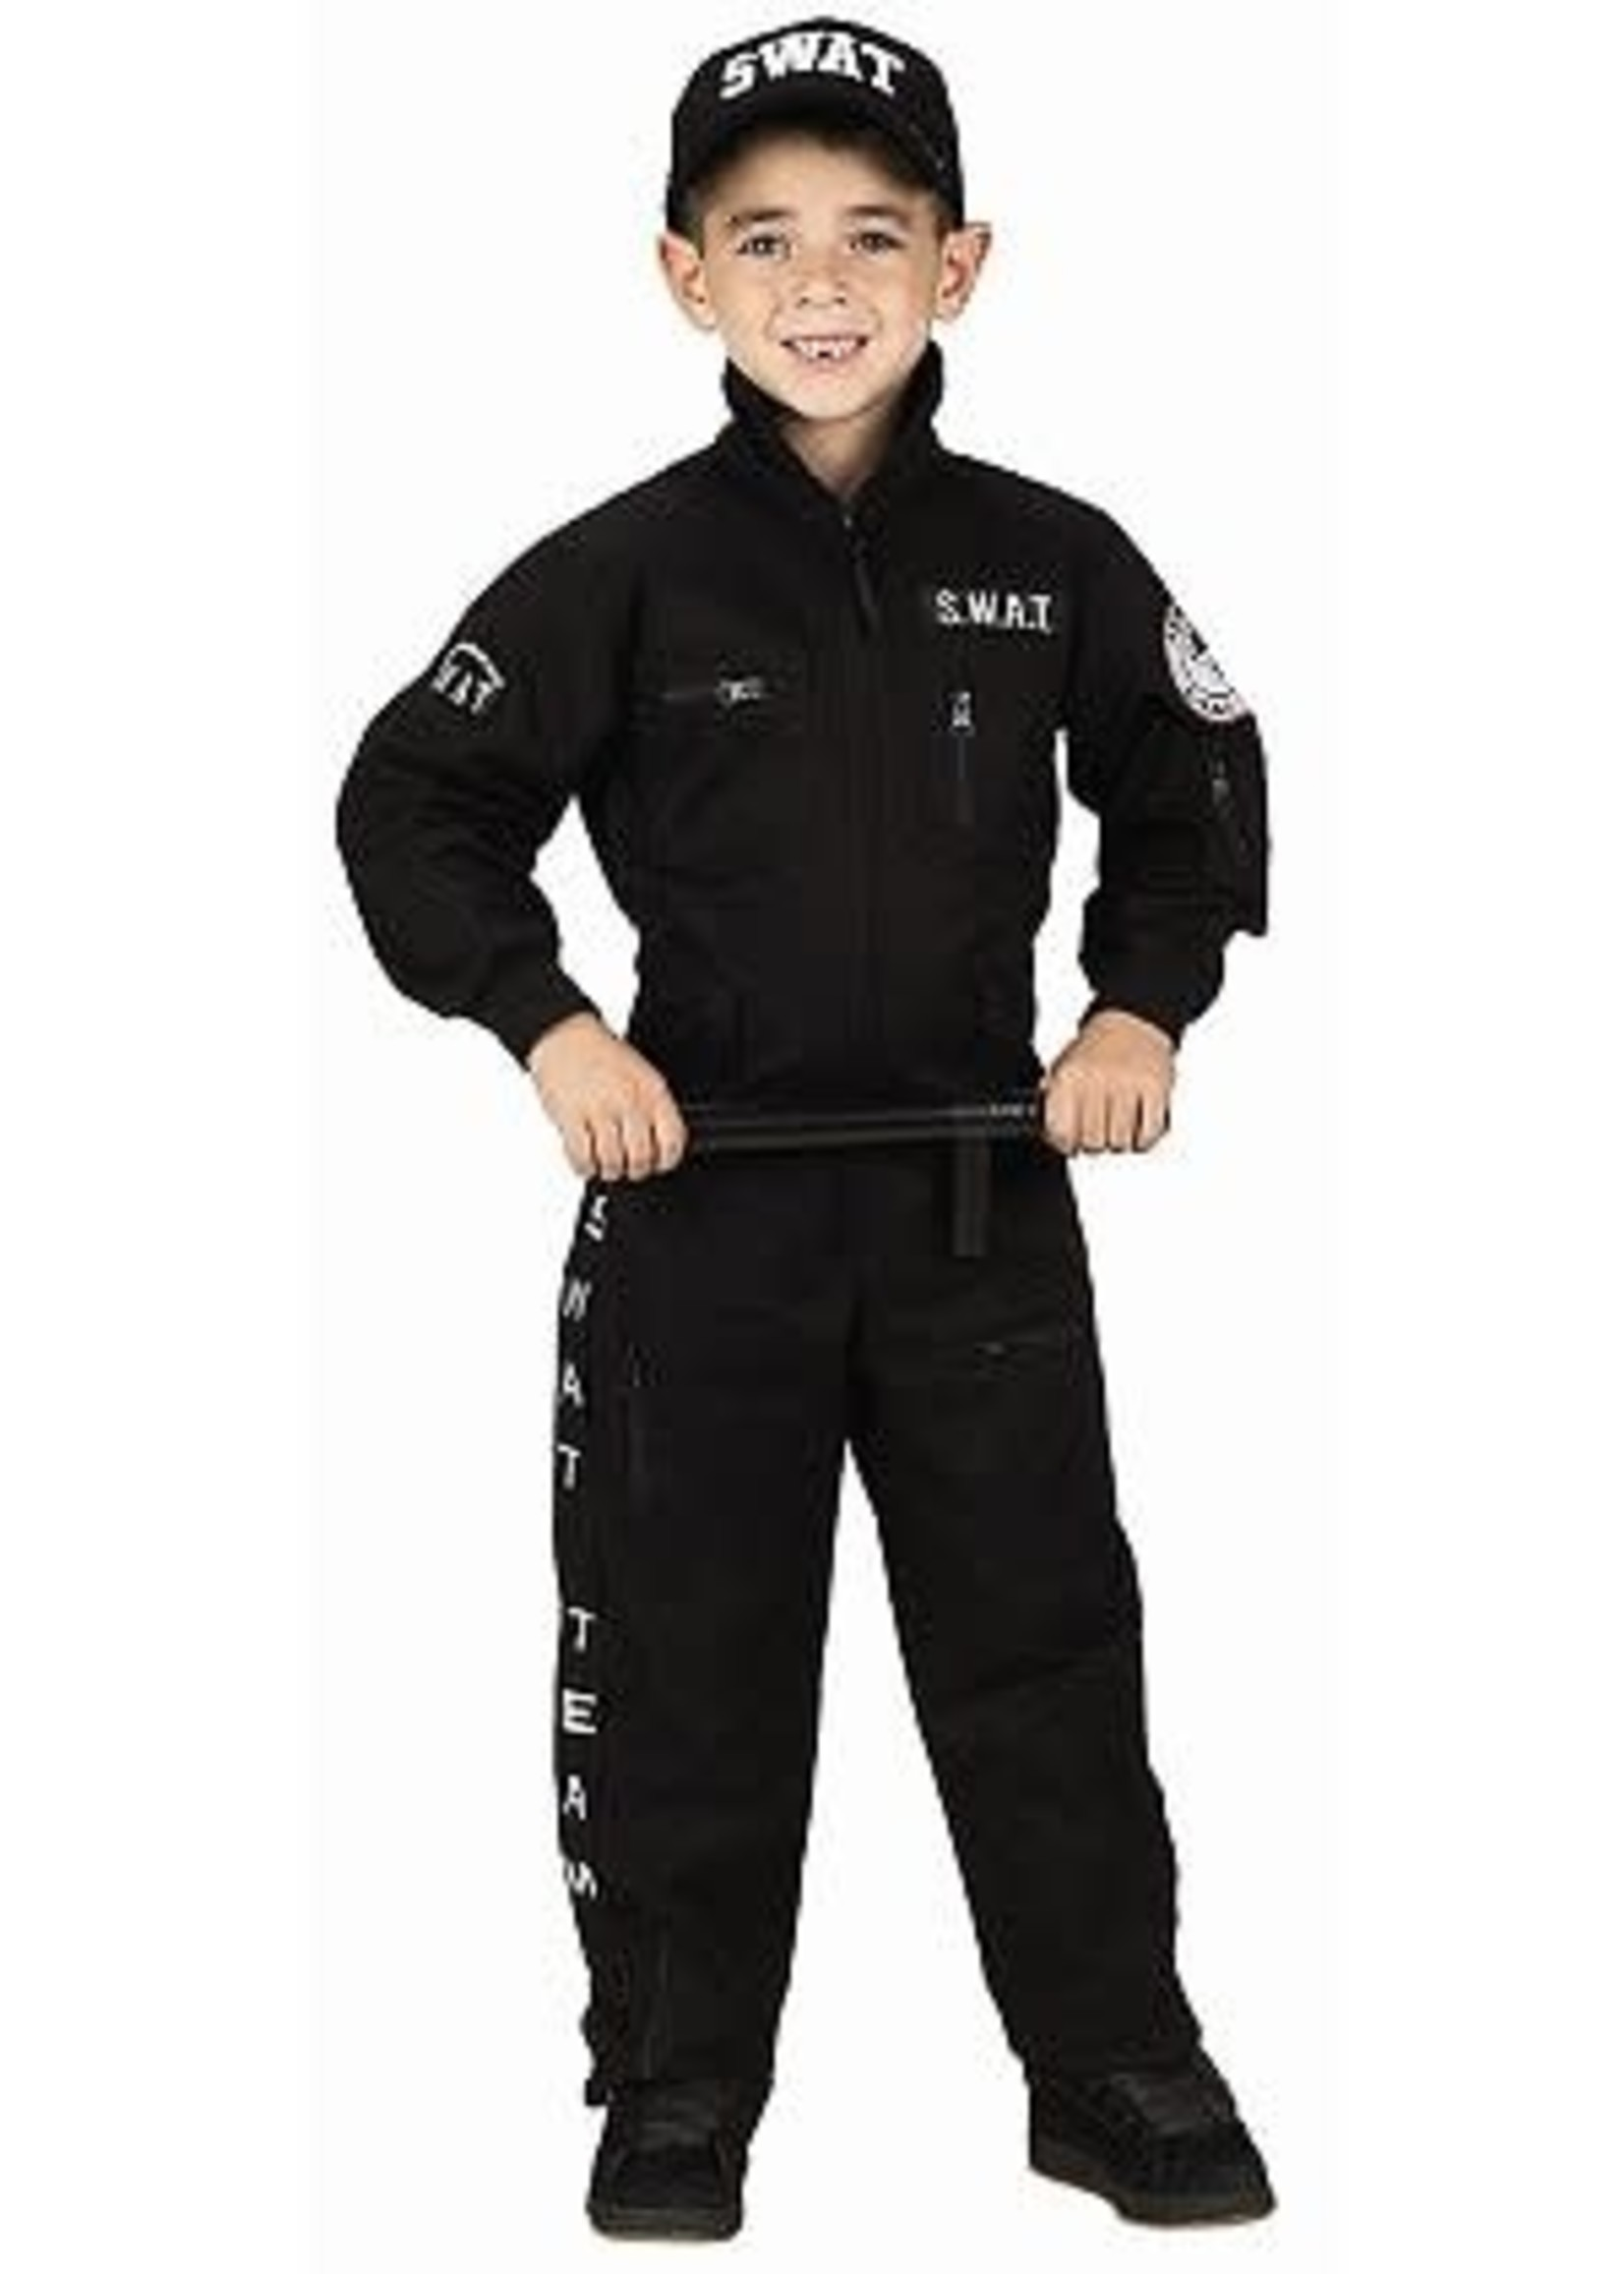 Swat Outfit 6-8